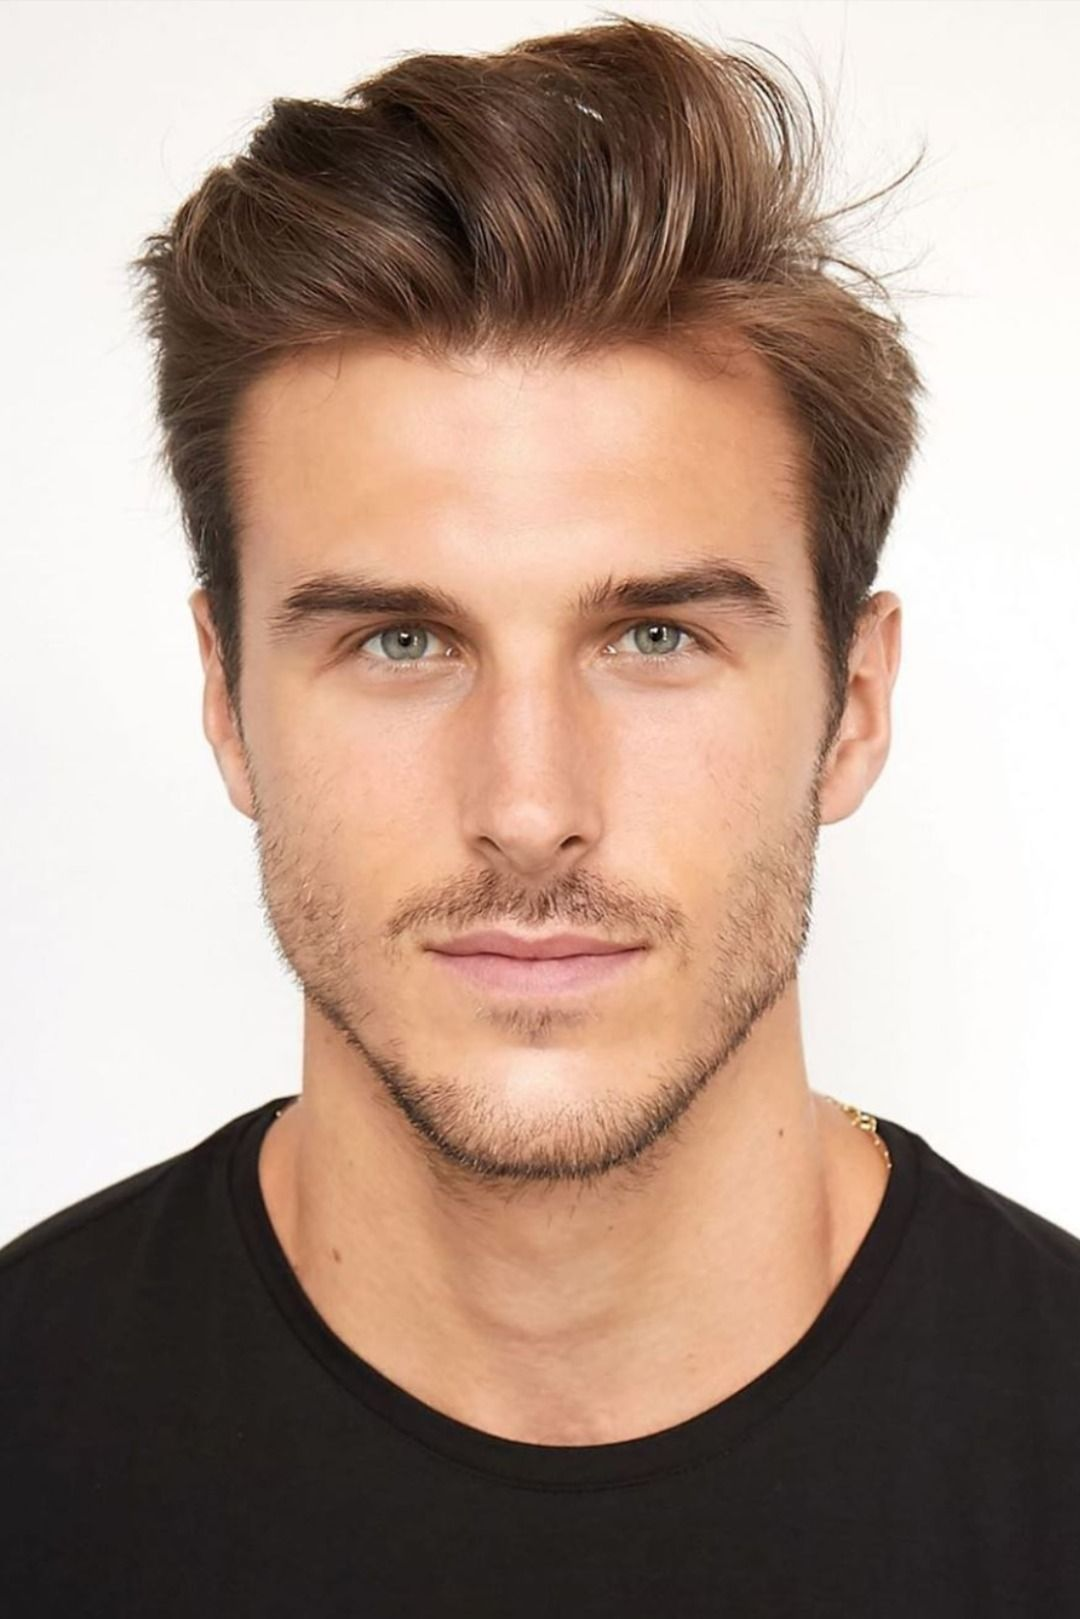 24++ Hairstyles for face shape male ideas in 2021